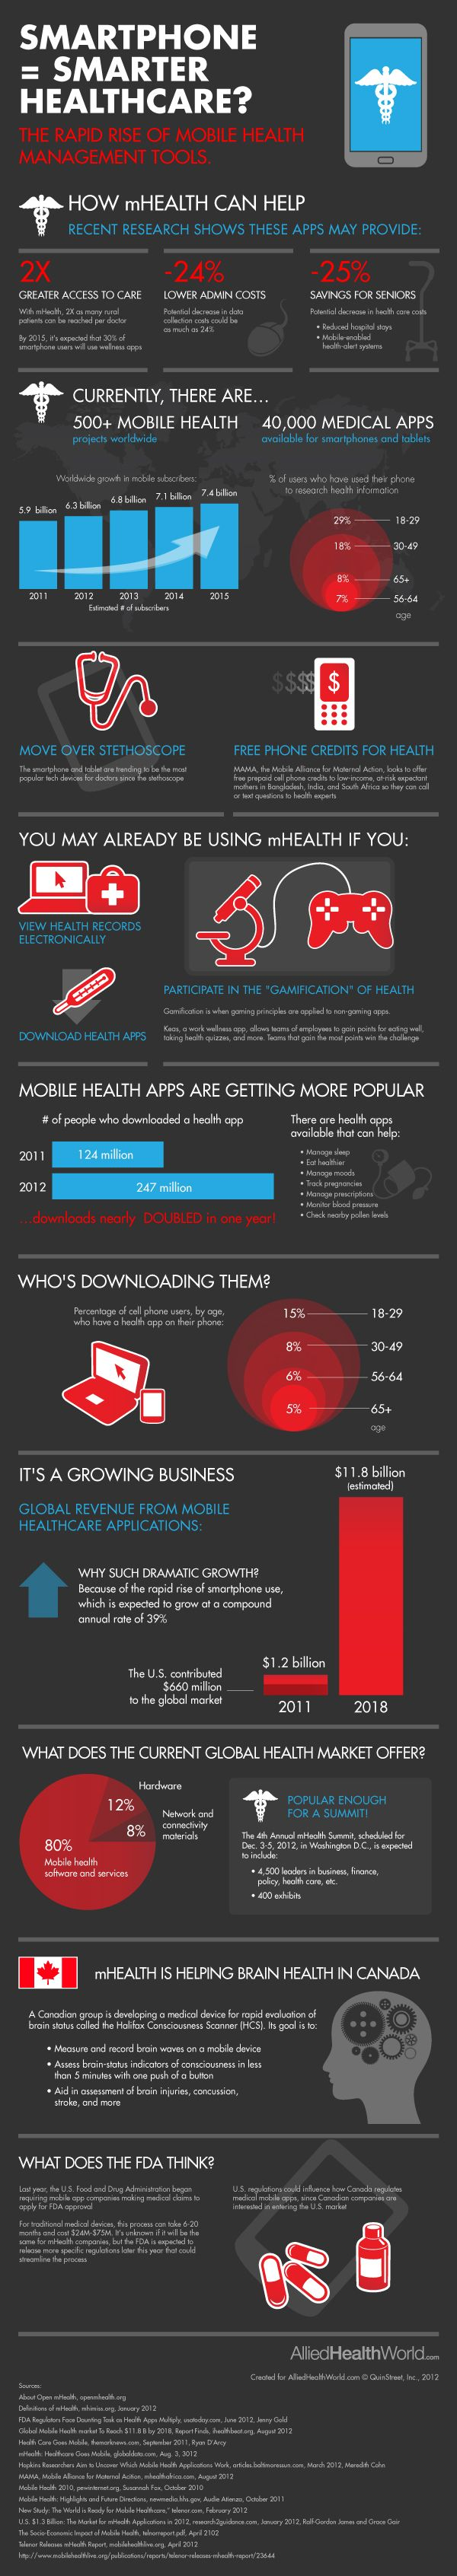 The infographic created by Allied Health World  shown below highlights the rapid rise of mobile health management tools available to the consumer on their smartphones.